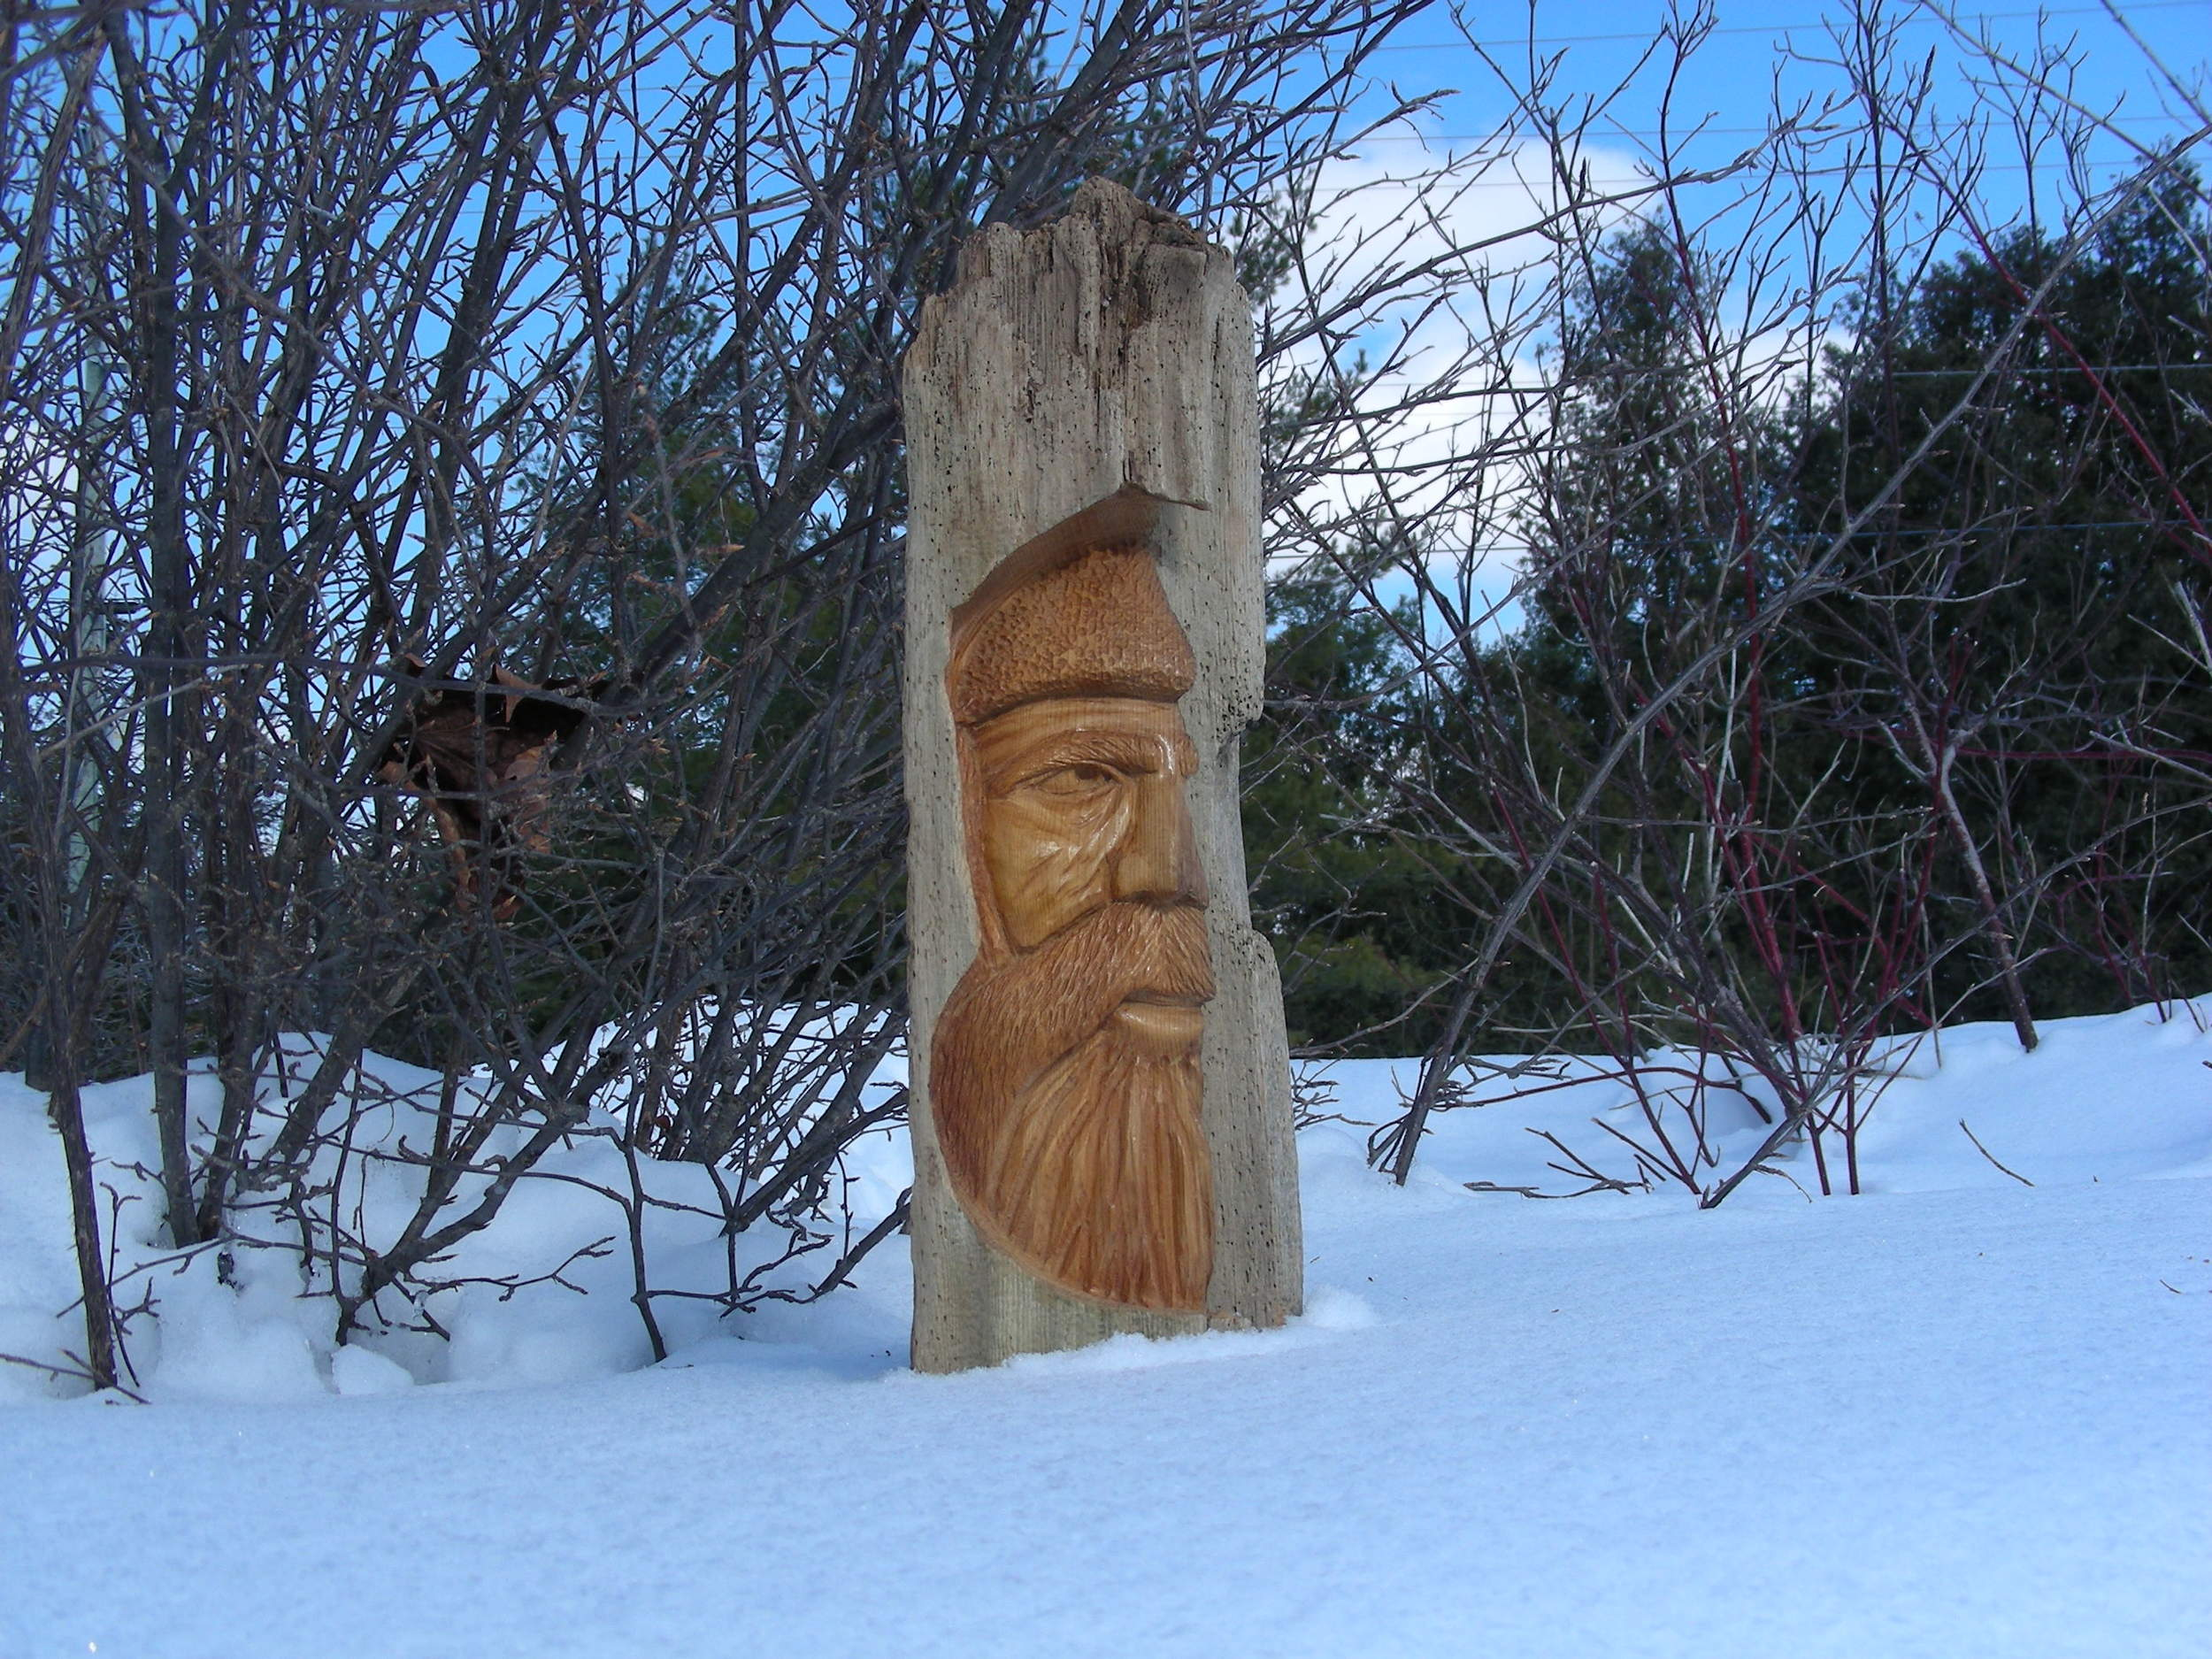 Caygeon wood spirit carving